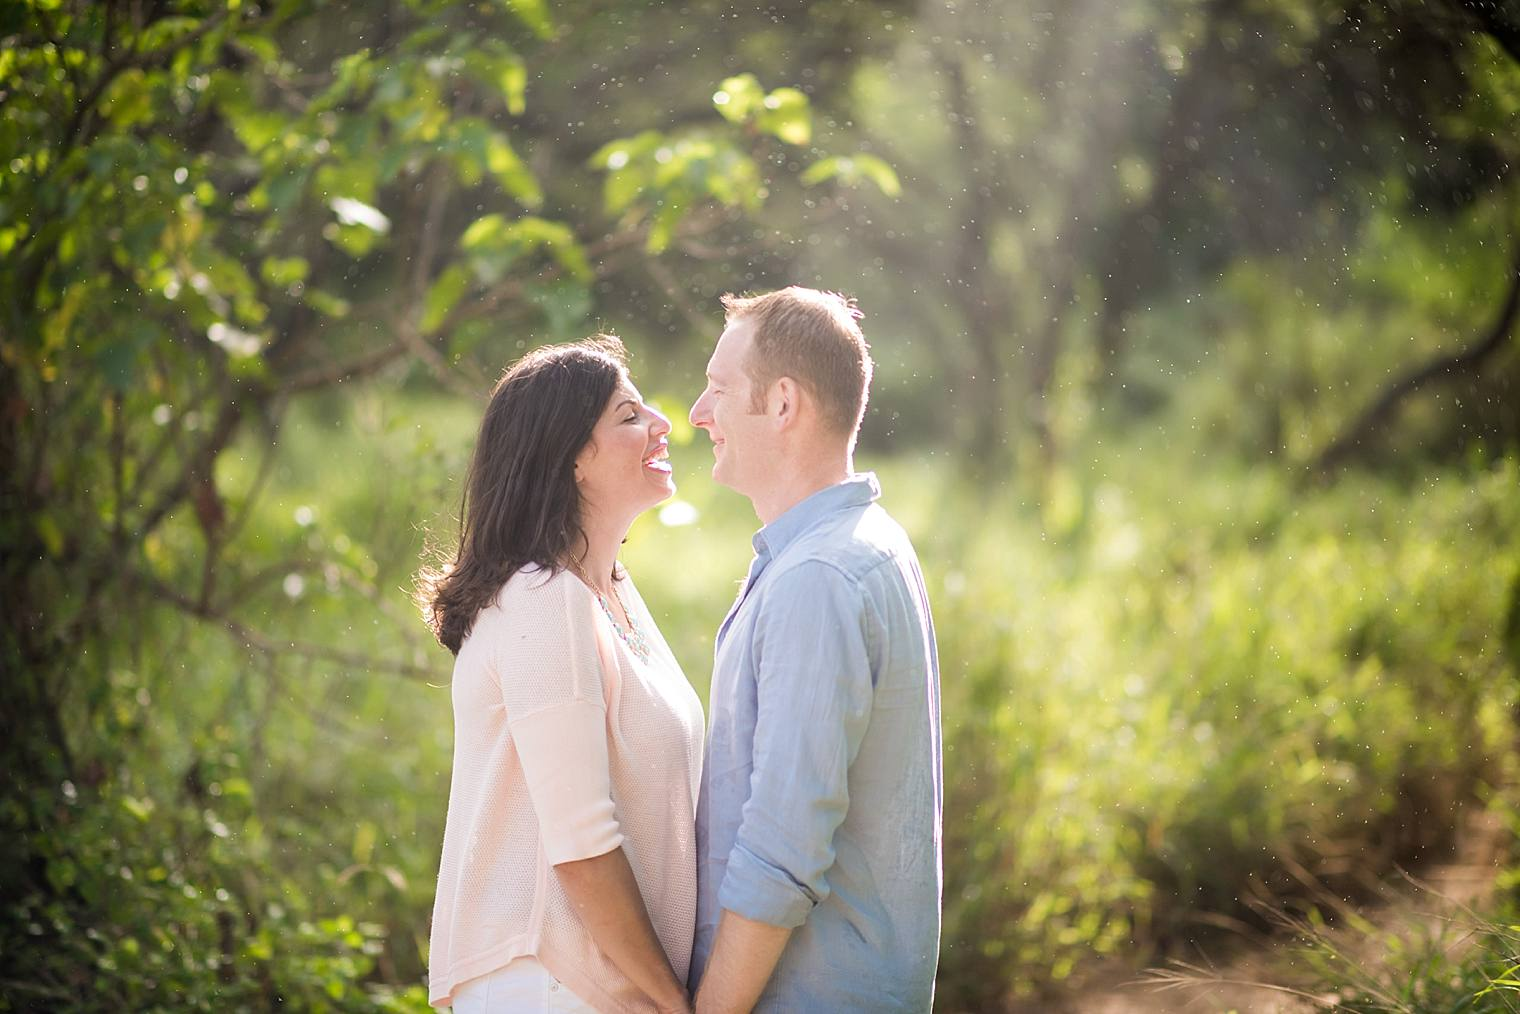 couple kissing during a sun shower